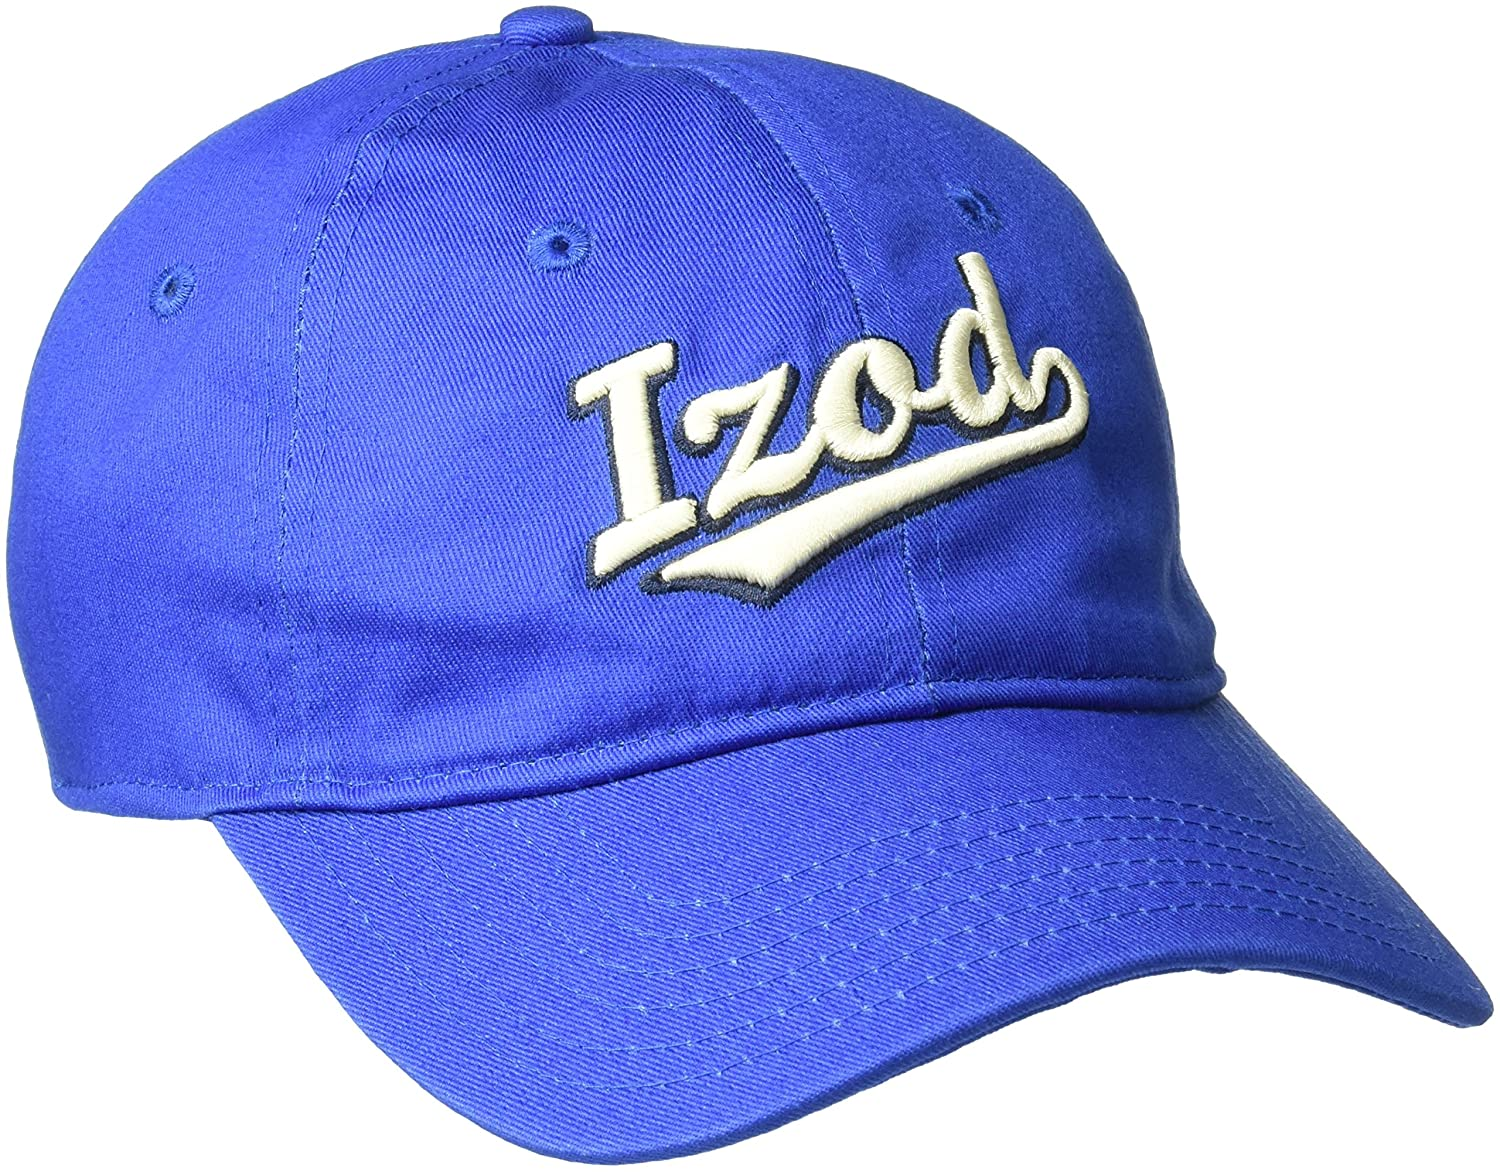 Amazon.com: IZOD Mens Felt Embroidered Patch Adjustable Baseball Cap, Green, One Size: Clothing